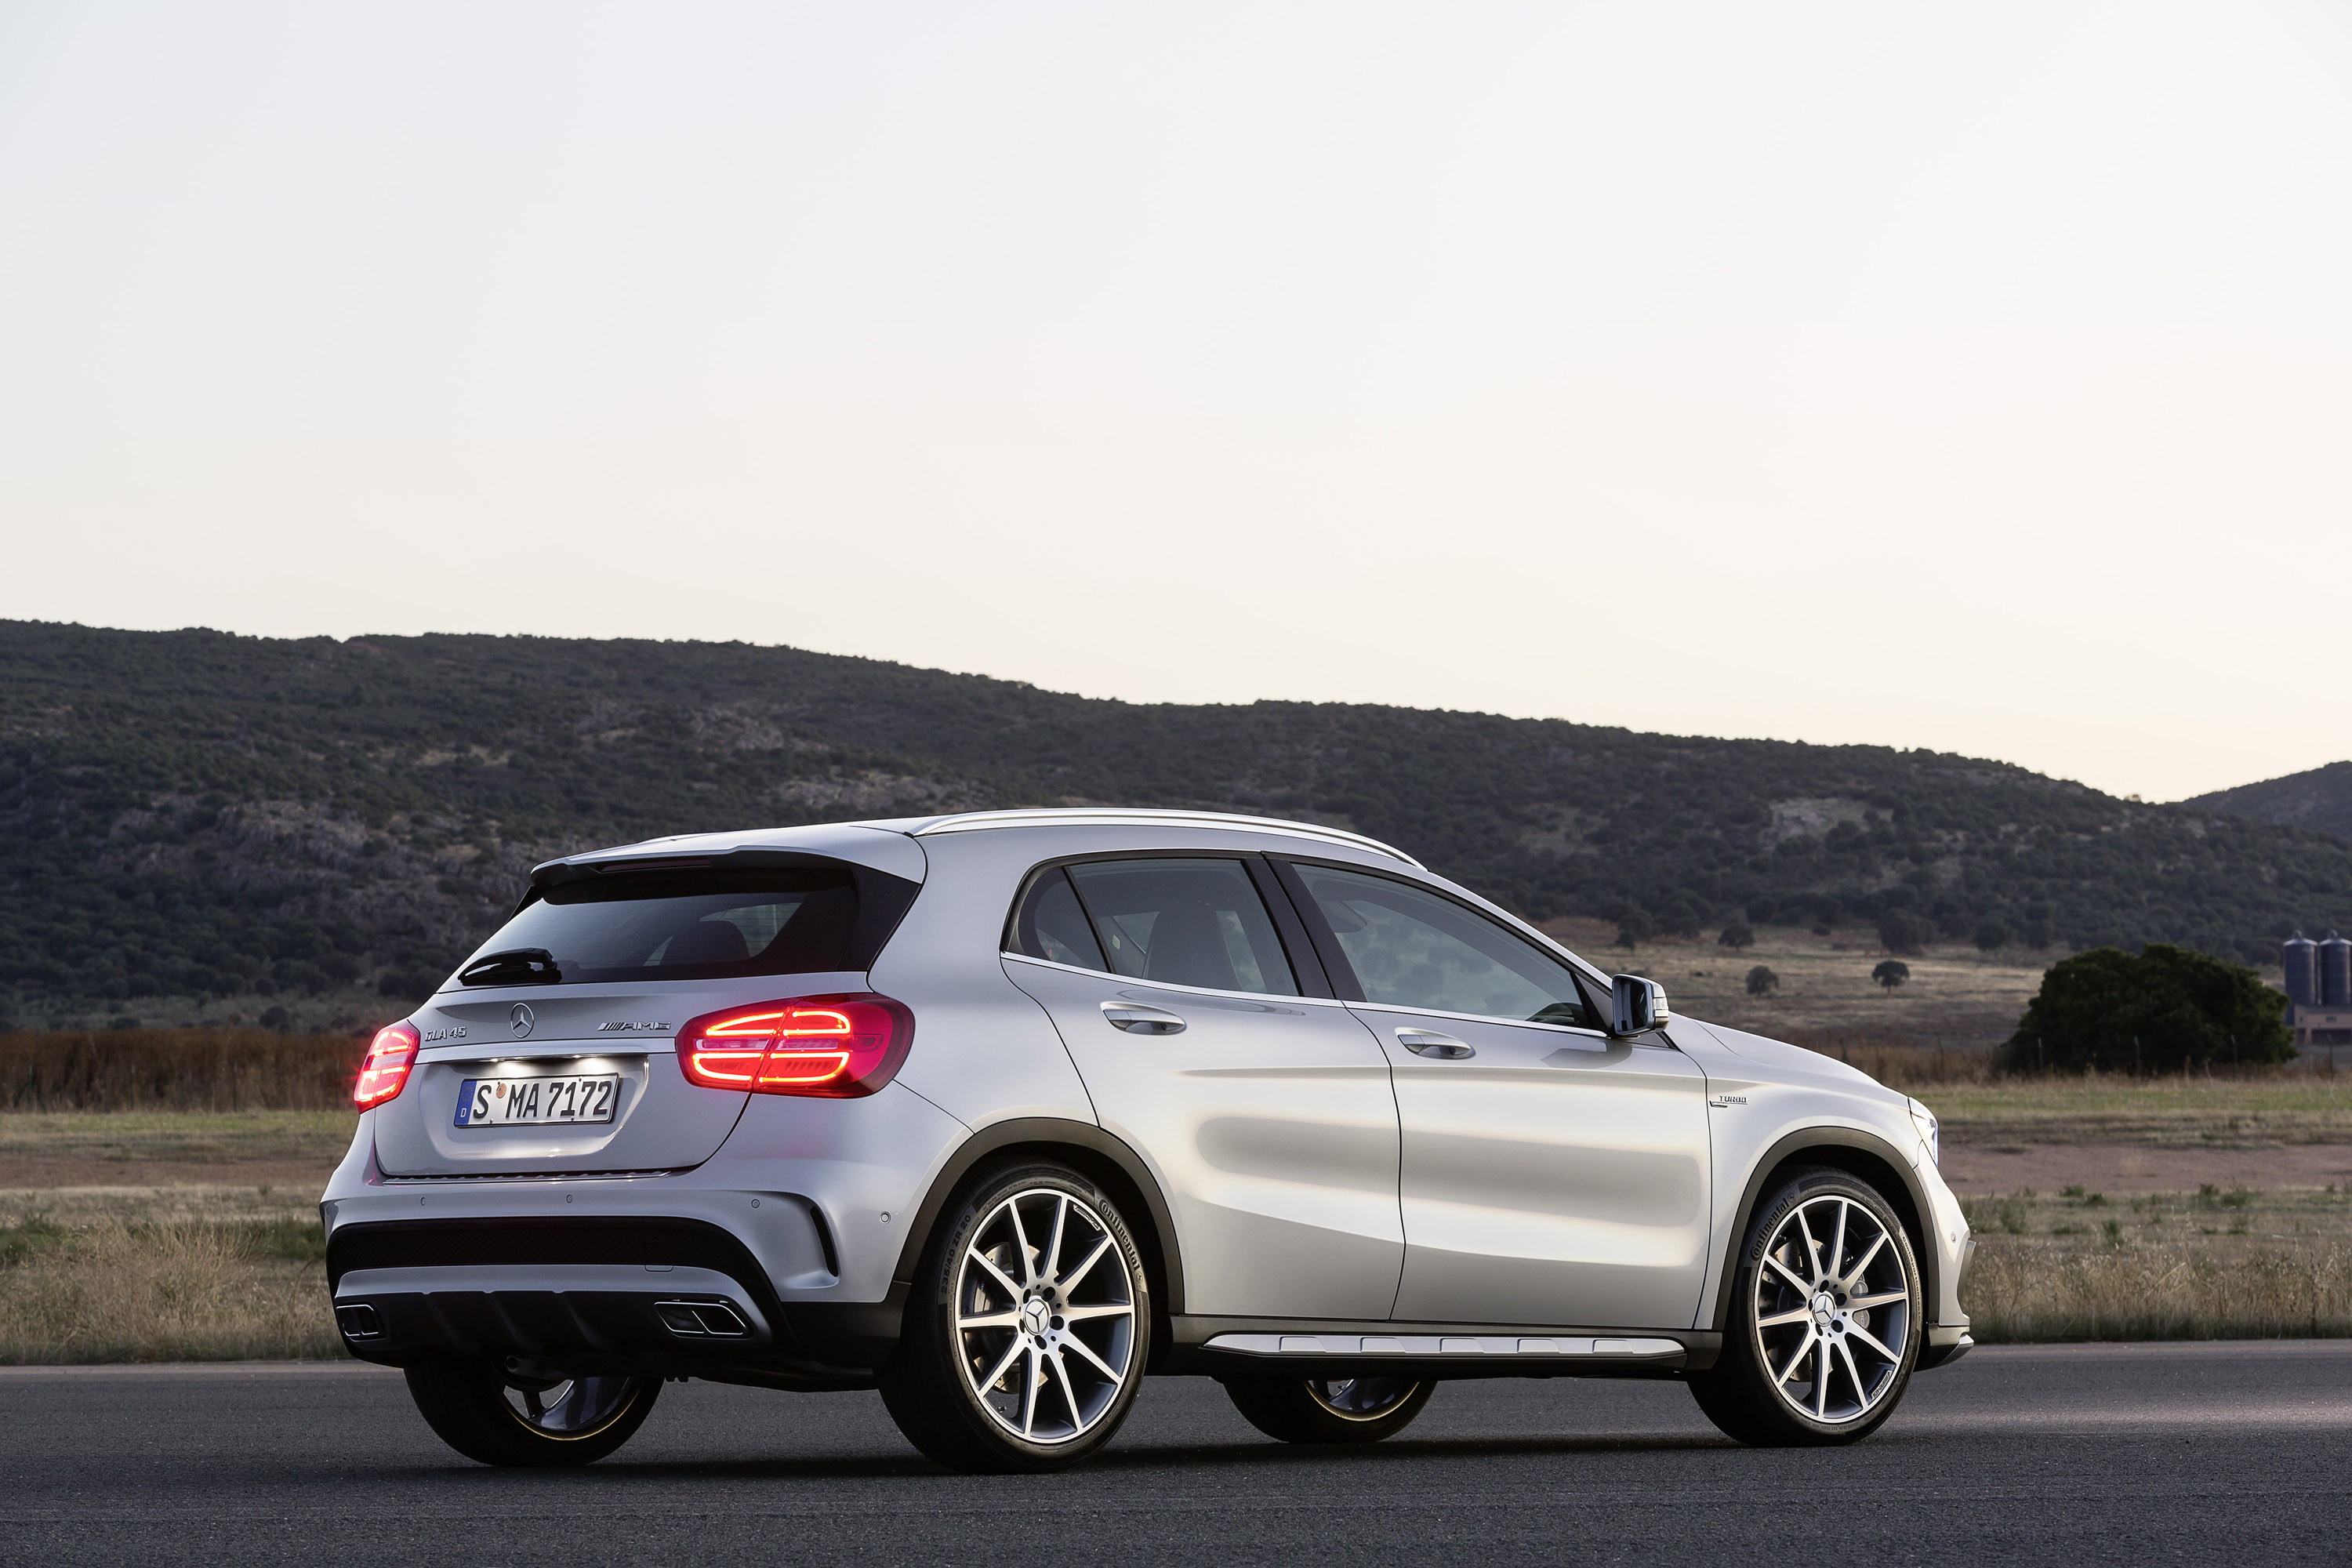 2015 mercedes benz gla us price for Mercedes benz gla 2015 price